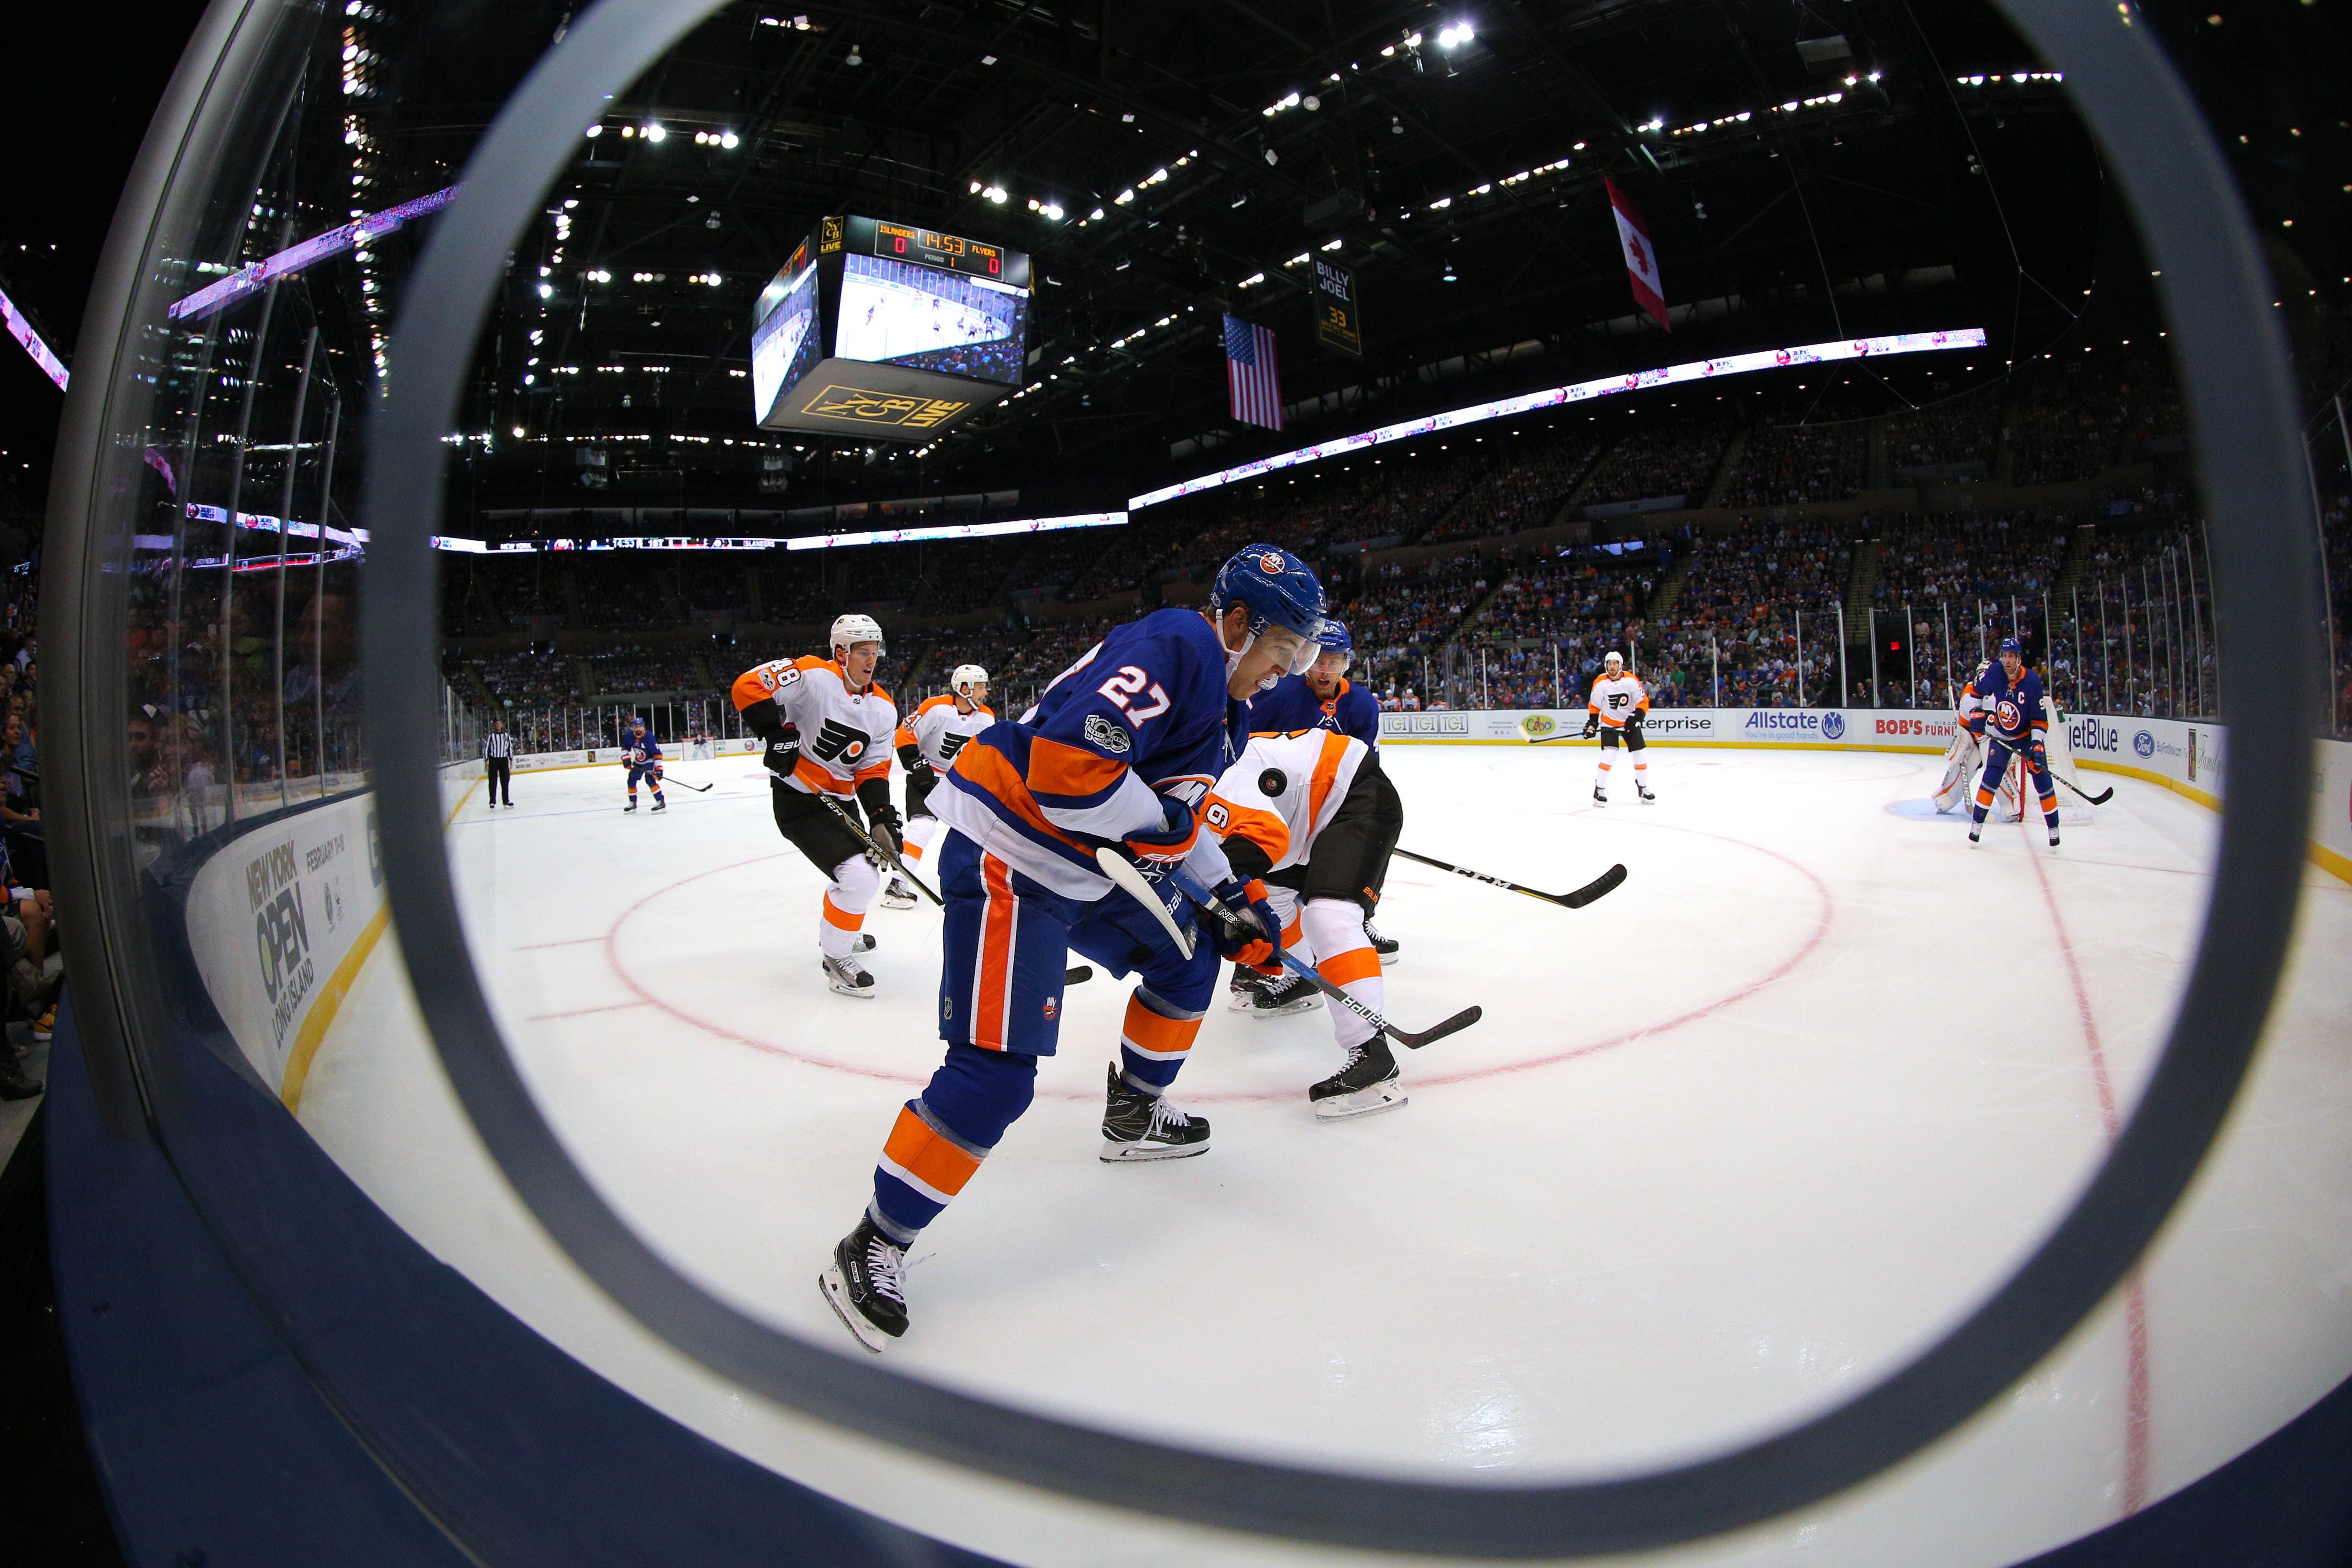 Sep 17, 2017; Uniondale, NY, USA; New York Islanders center Anders Lee (27) and Philadelphia Flyers defenseman Ivan Provorov (9) fight for the puck during the first period of a preseason game at NYCB Live at the Nassau Veterans Memorial Coliseum. Mandatory Credit: Brad Penner-USA TODAY Sports